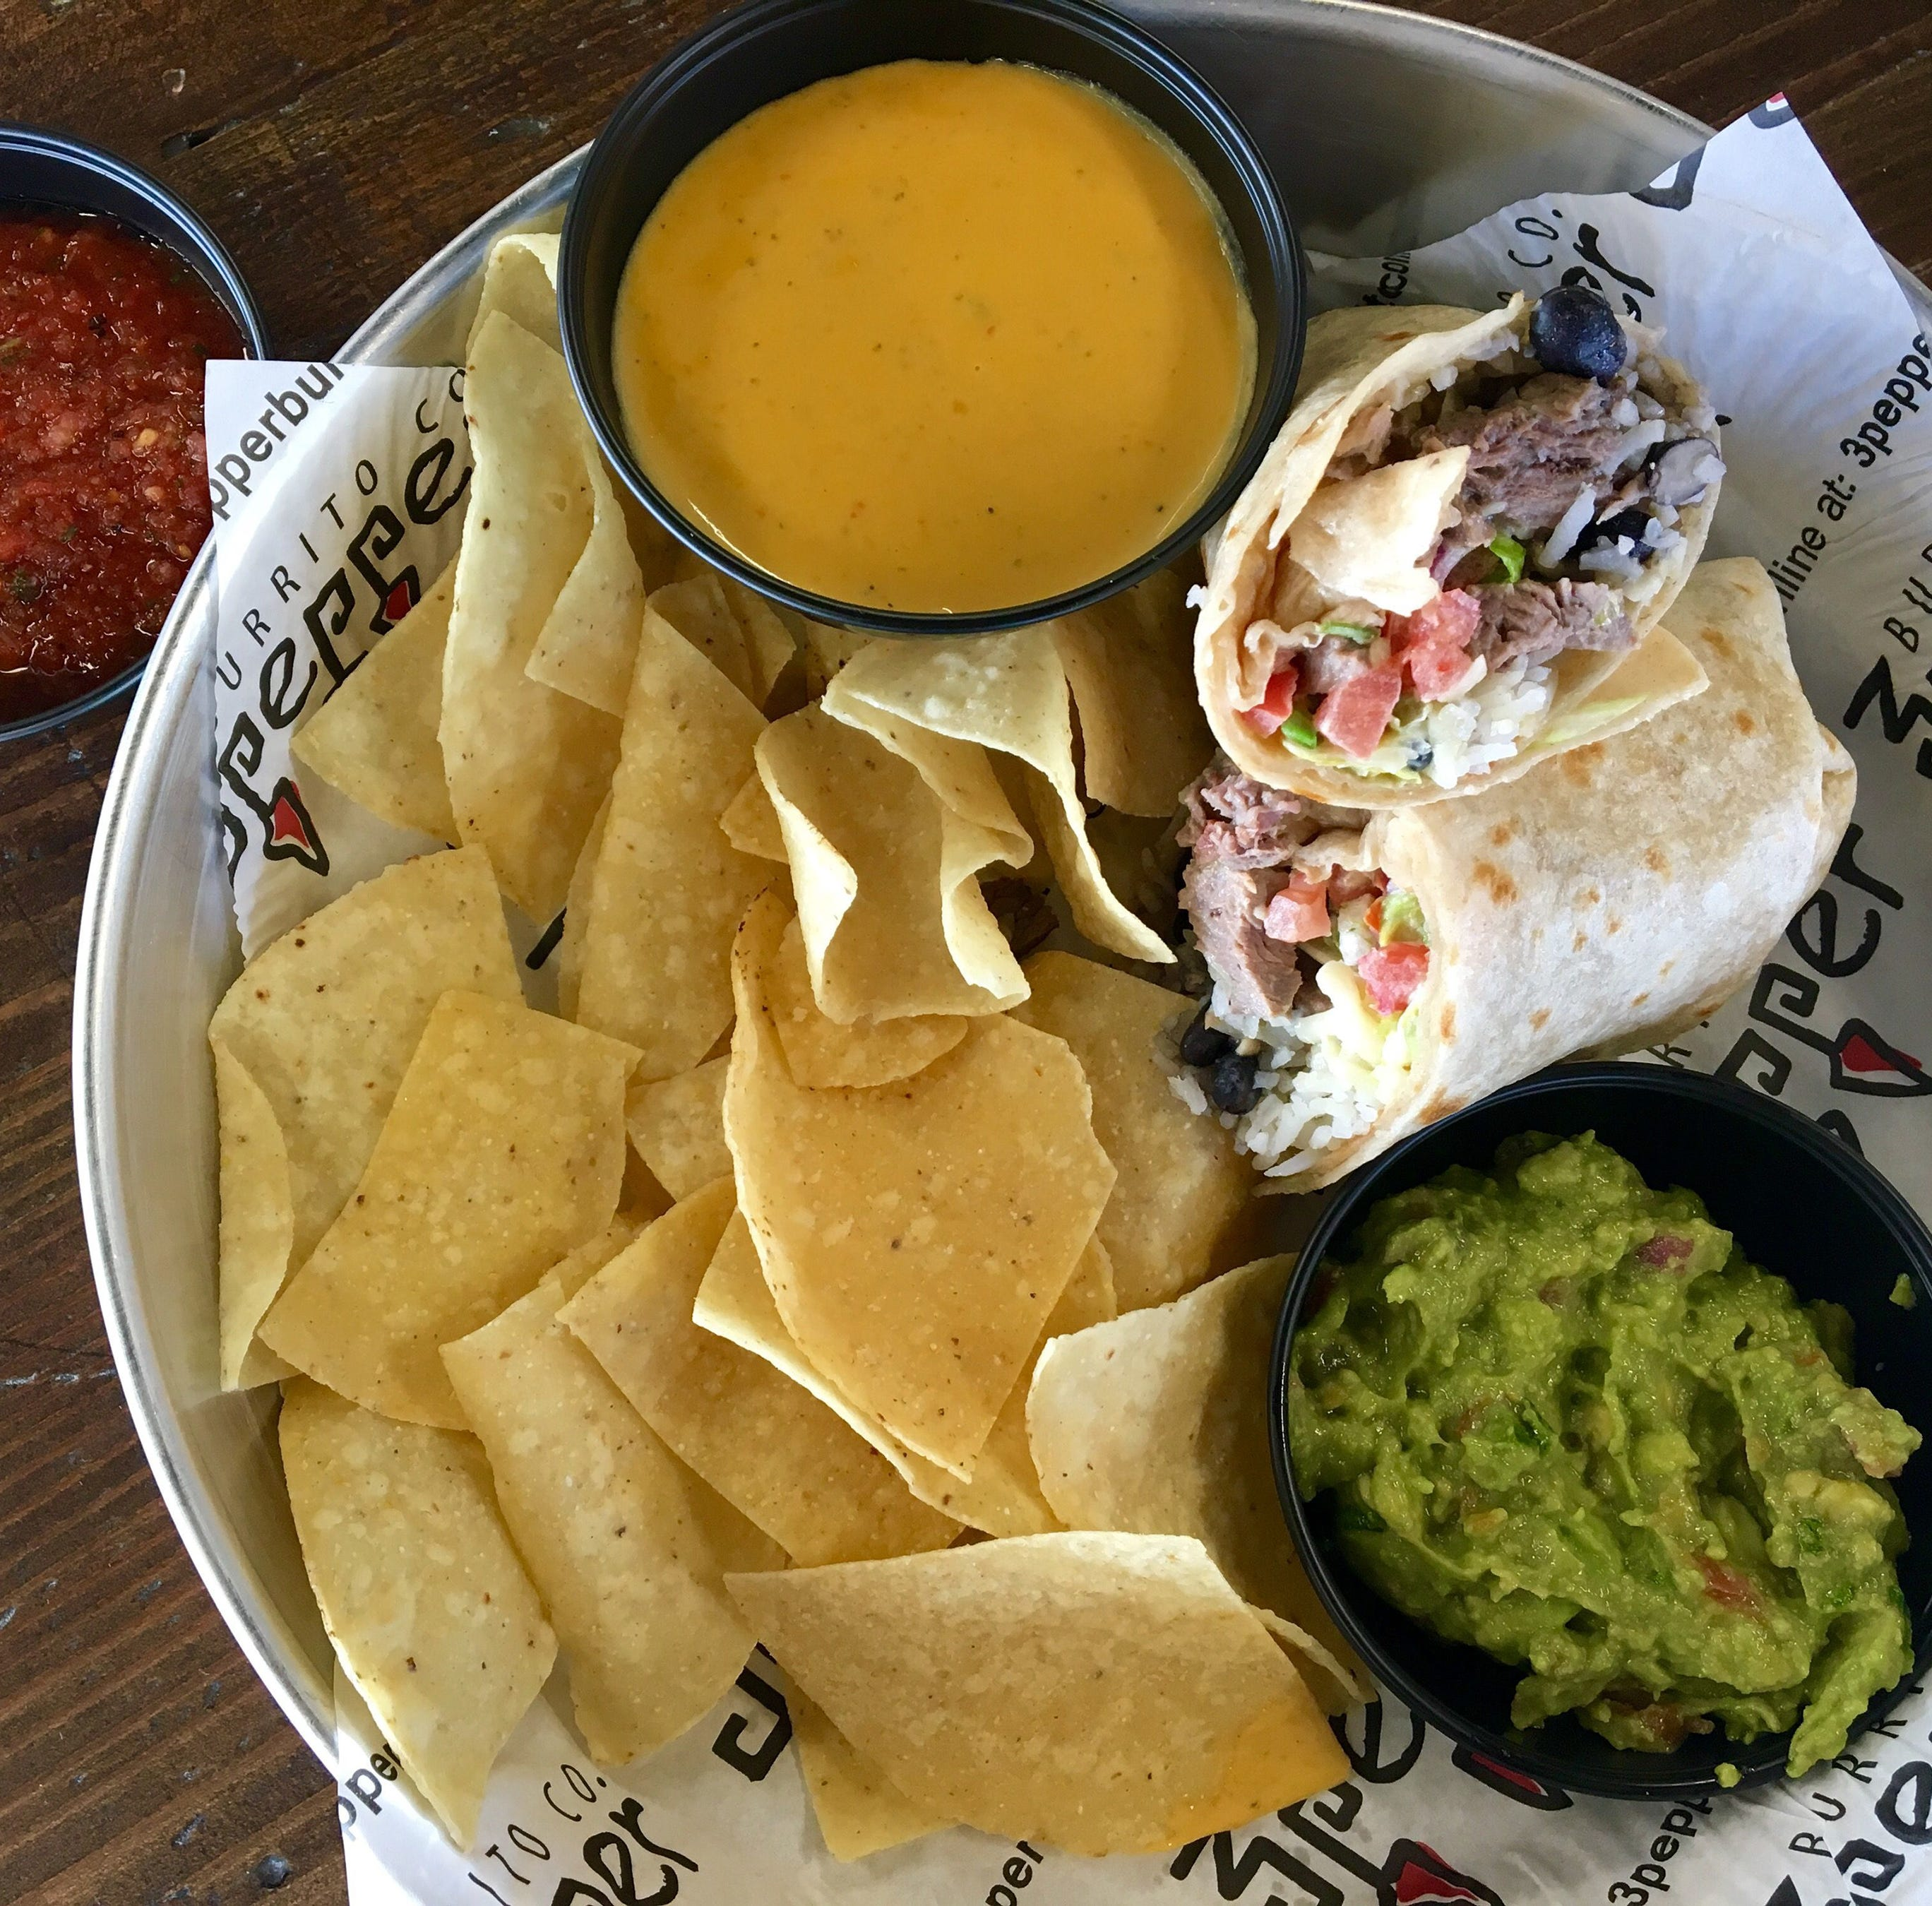 In the Know: 3 Pepper Burrito coming to Estero and North Naples